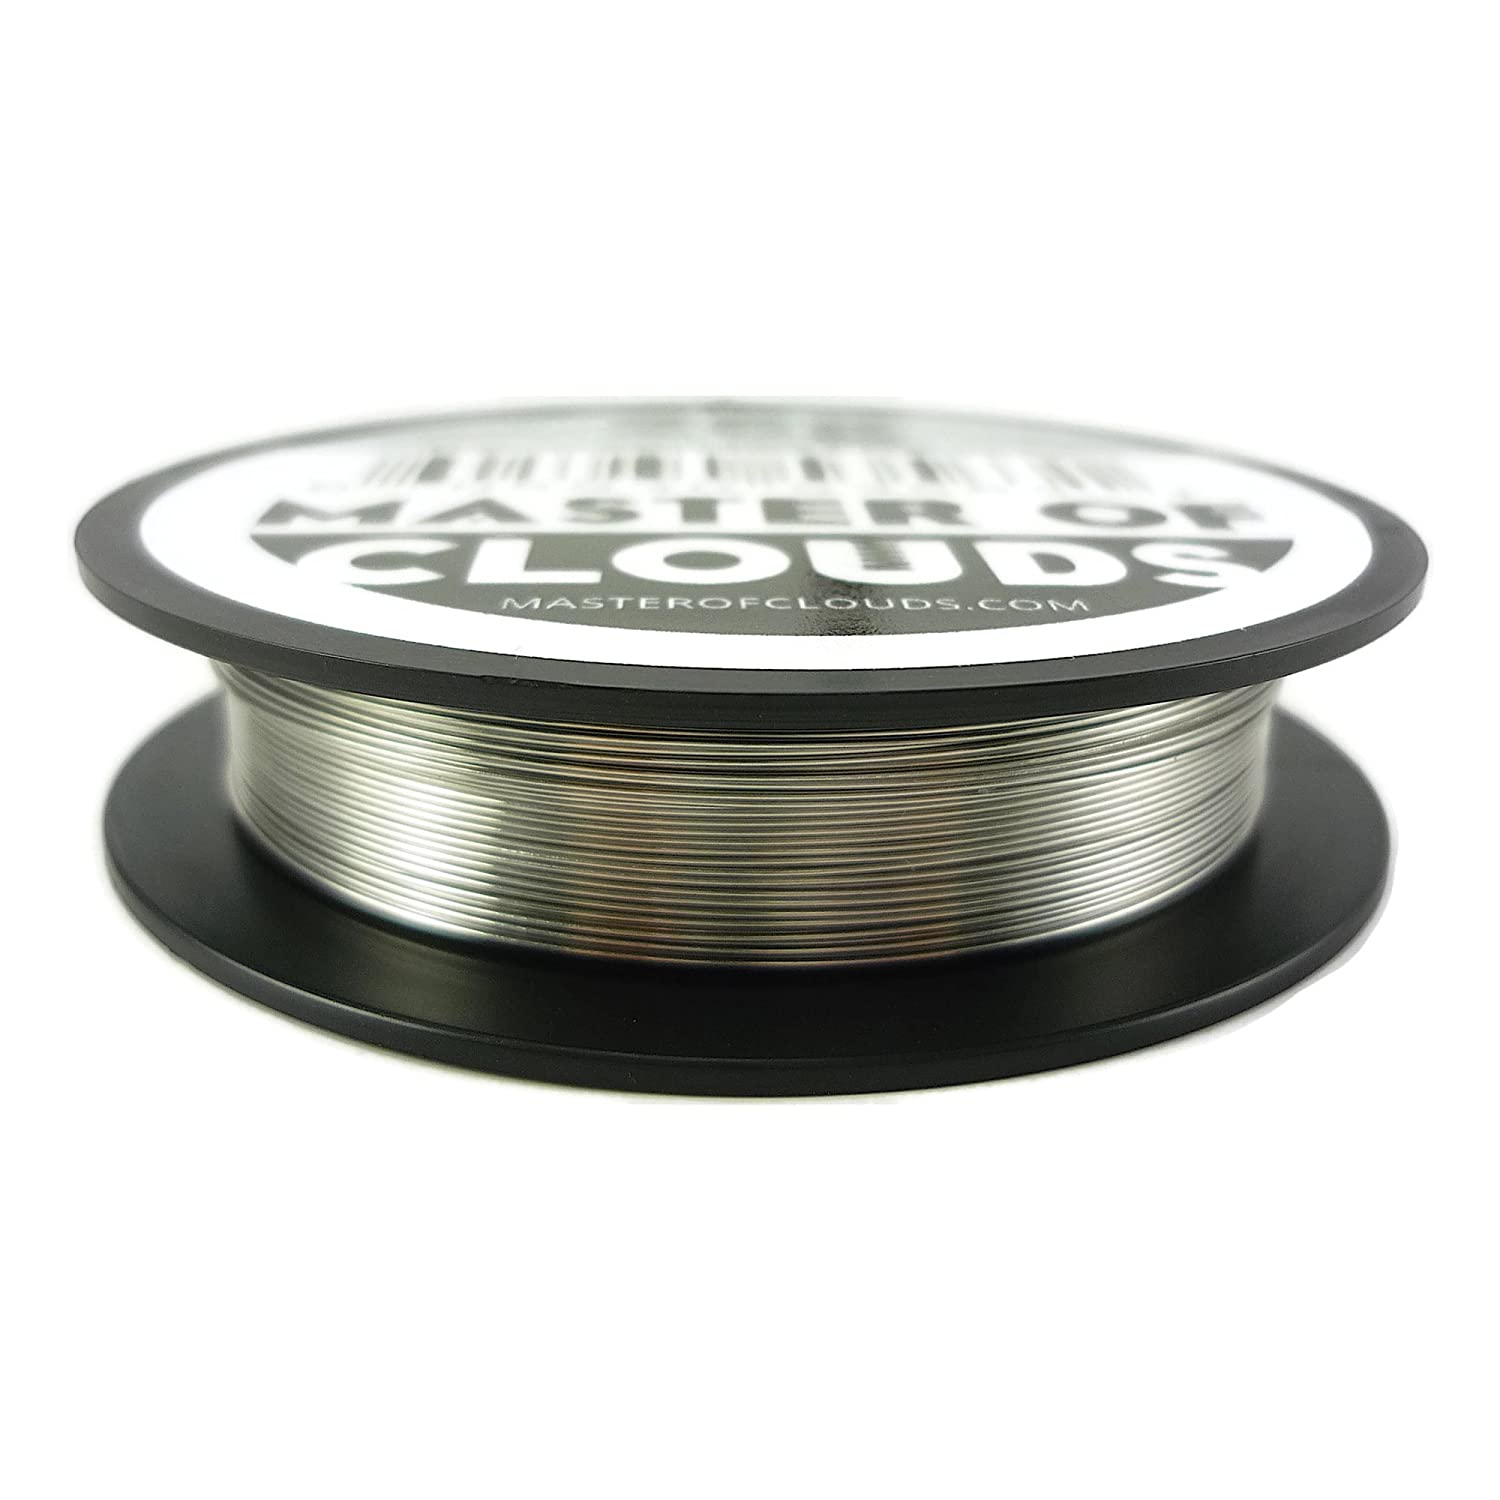 Authentic Youde Ss316l 24 Ga Awg By Ud Ss316 L Gauge Daftar Geekvape Wire Nichrome Geek Vape Kawat  Grosir 26 Stainless Steel Resistance 040 Mm 26g